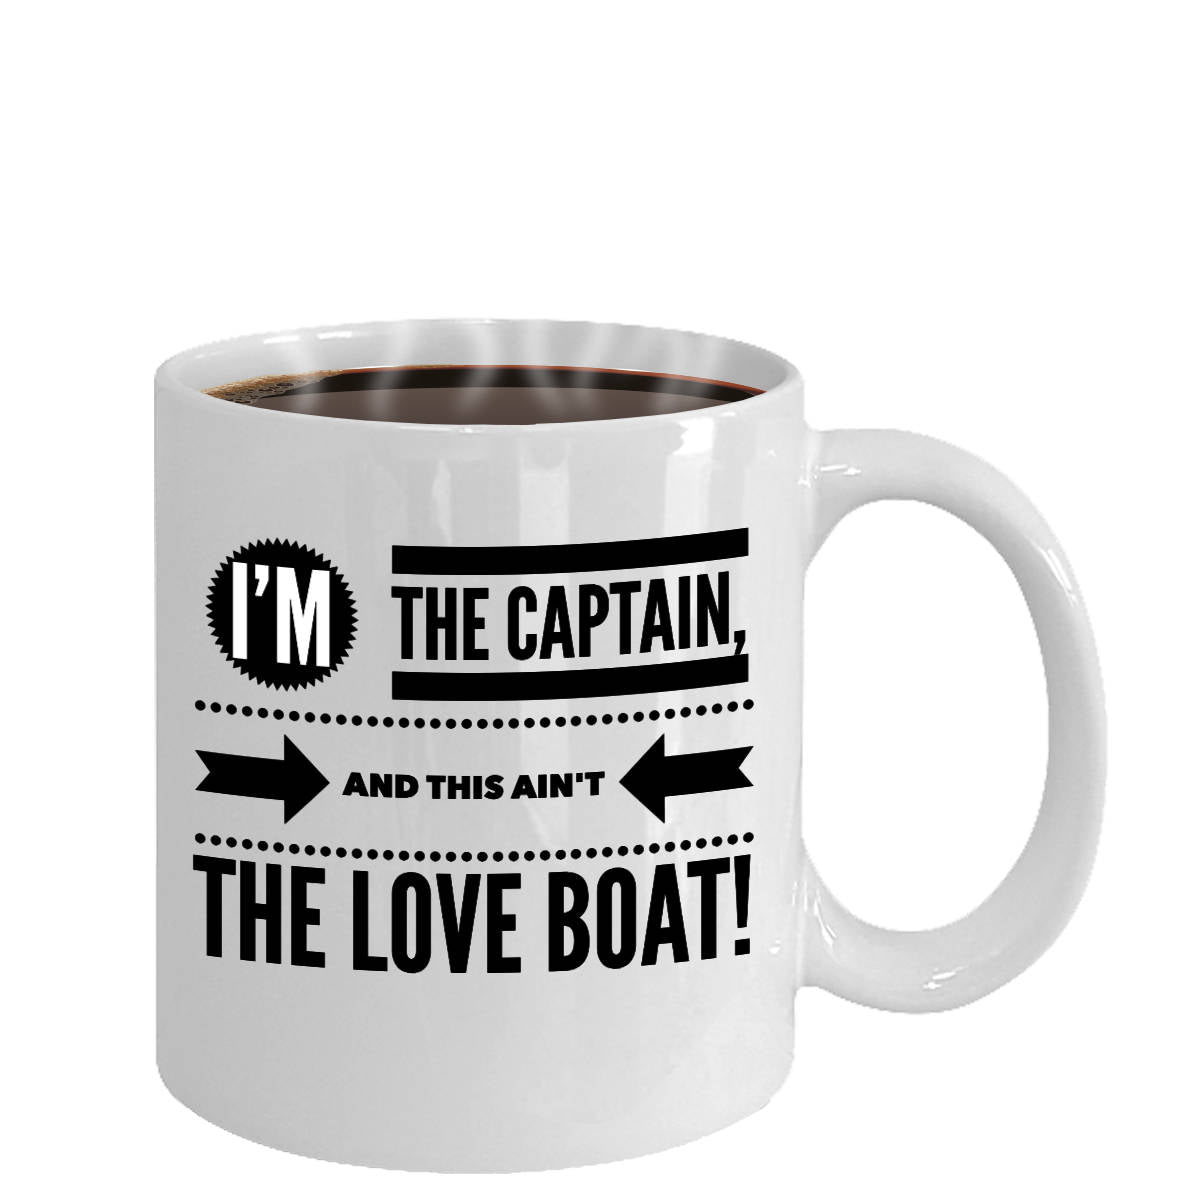 Funny Captain Gift Not the Love Boat Coffee Mug Ceramic